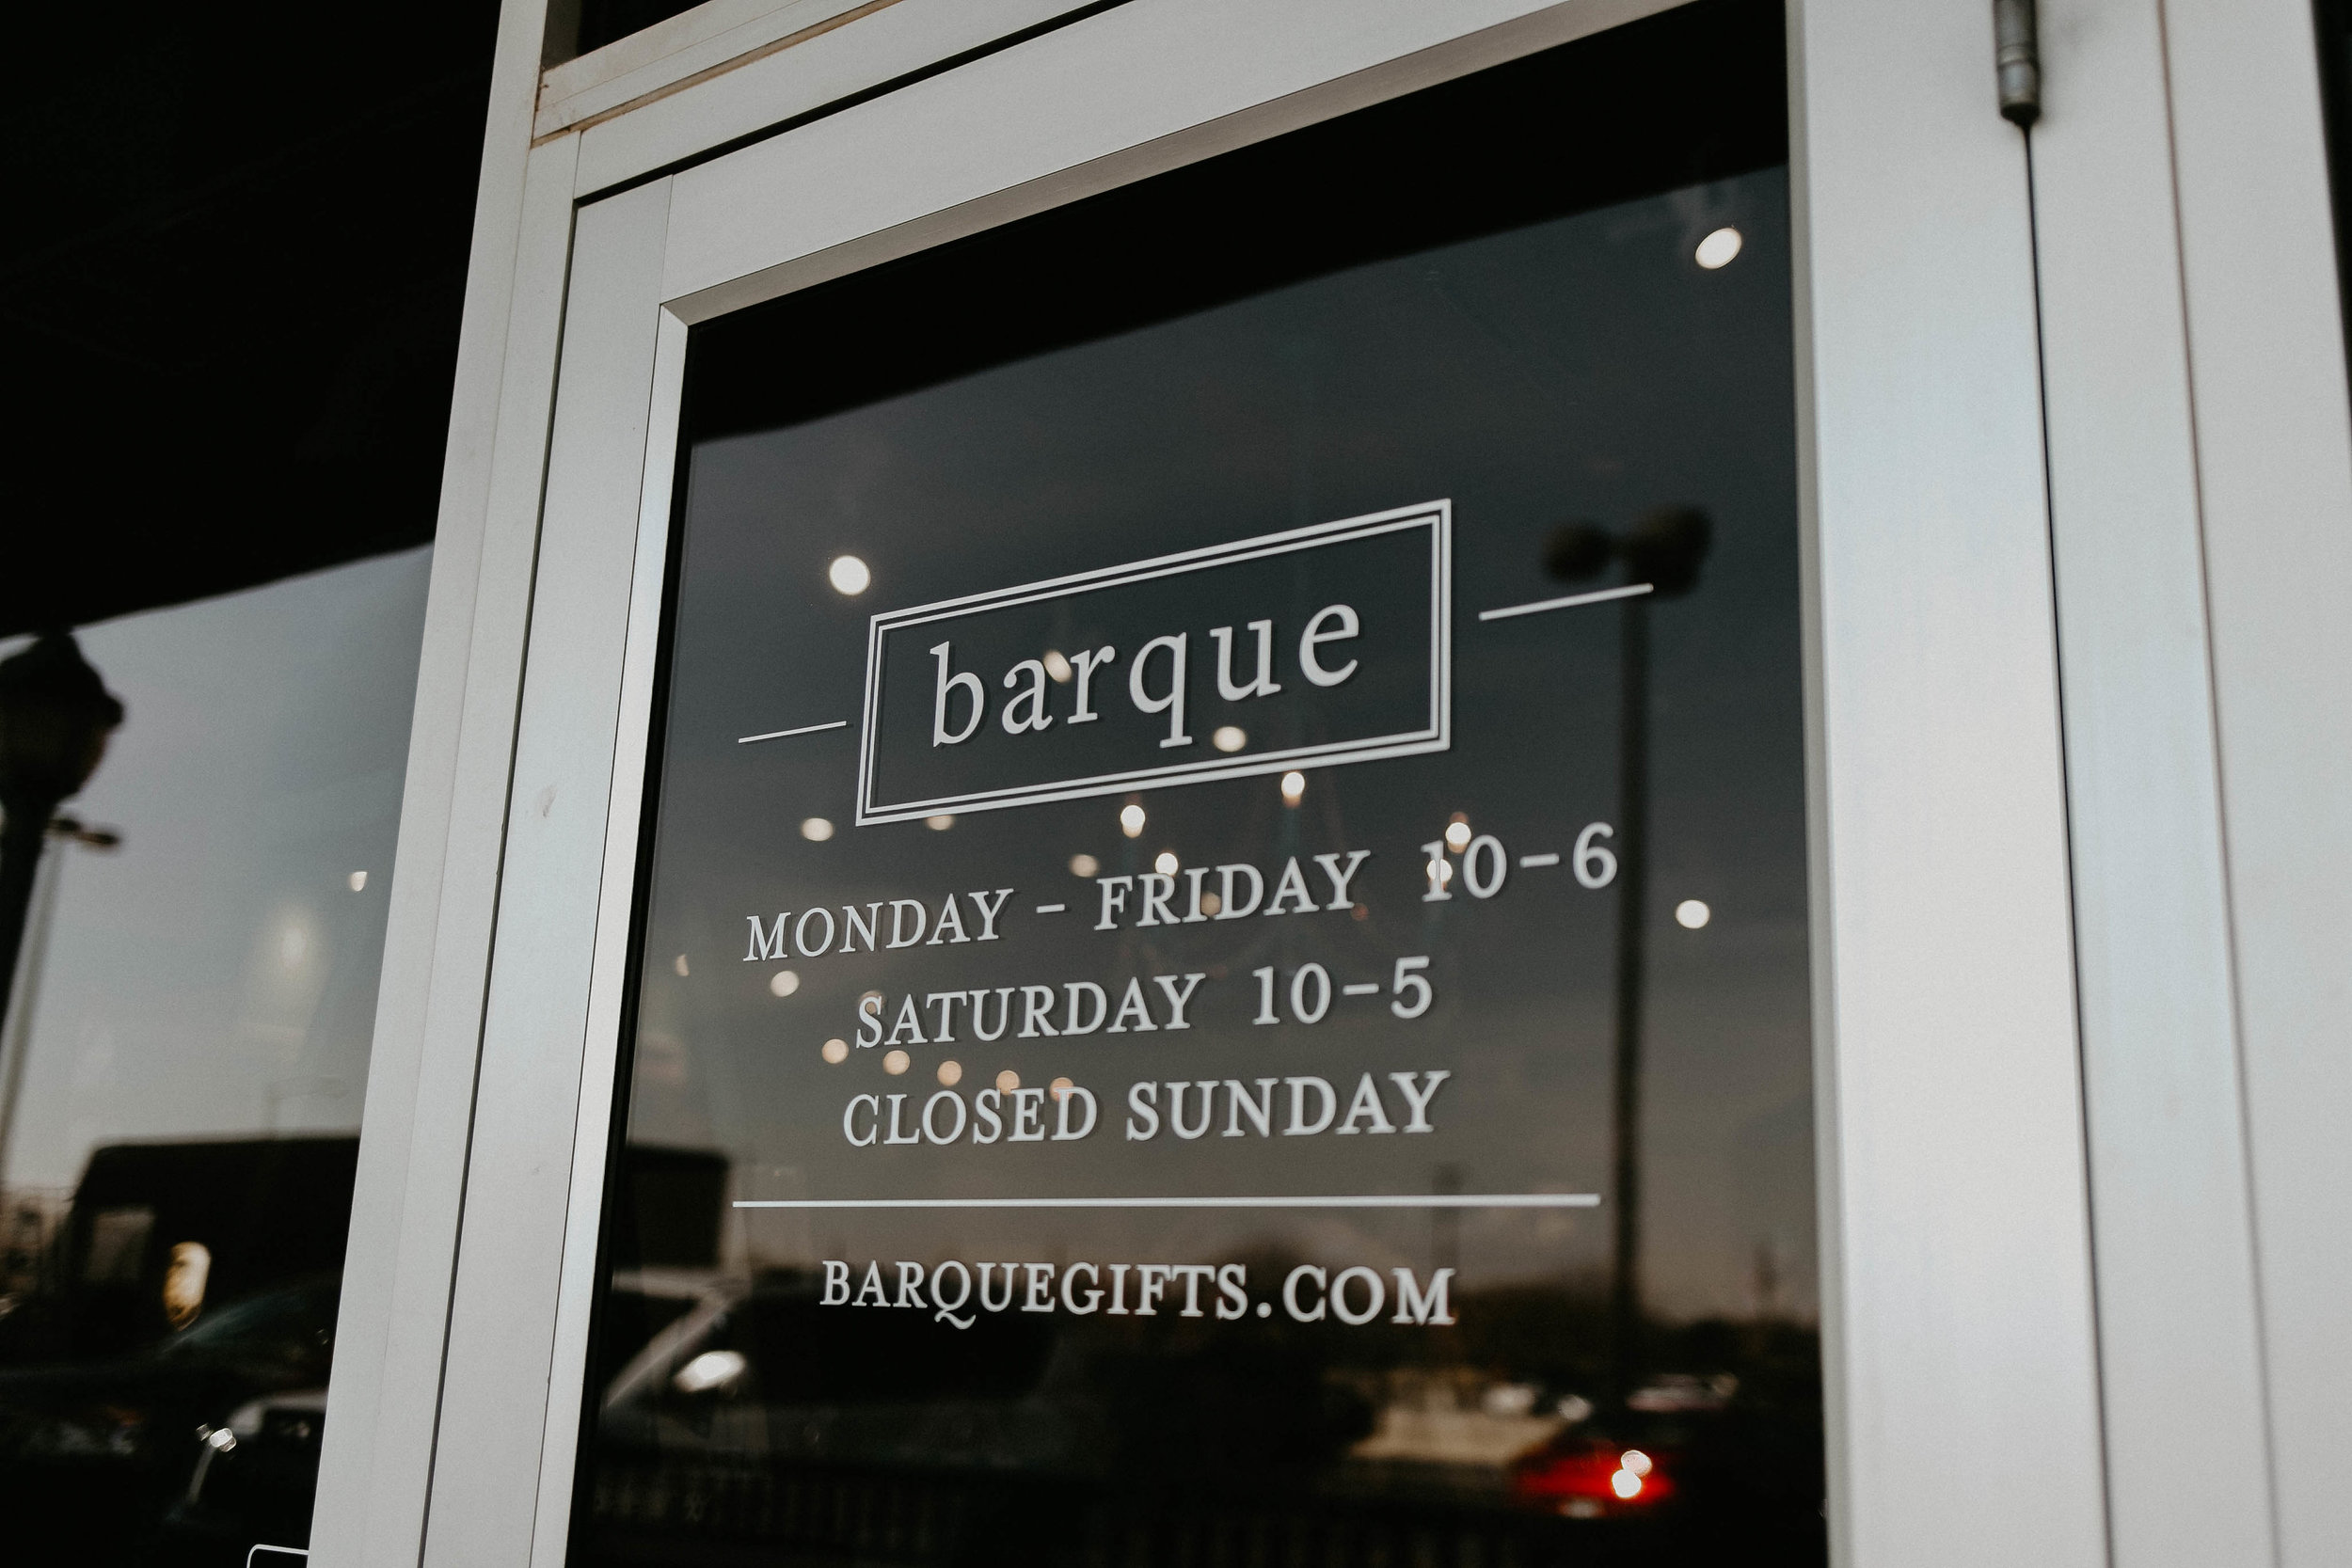 Store info - Phone - 806-785-1195Location - 4505 98th Street, Suite 170Social -FacebookInstagramWebsite - www.barquegifts.comStore Hours -Monday – Friday 10 am – 6 pmSaturday10 am – 5 pm